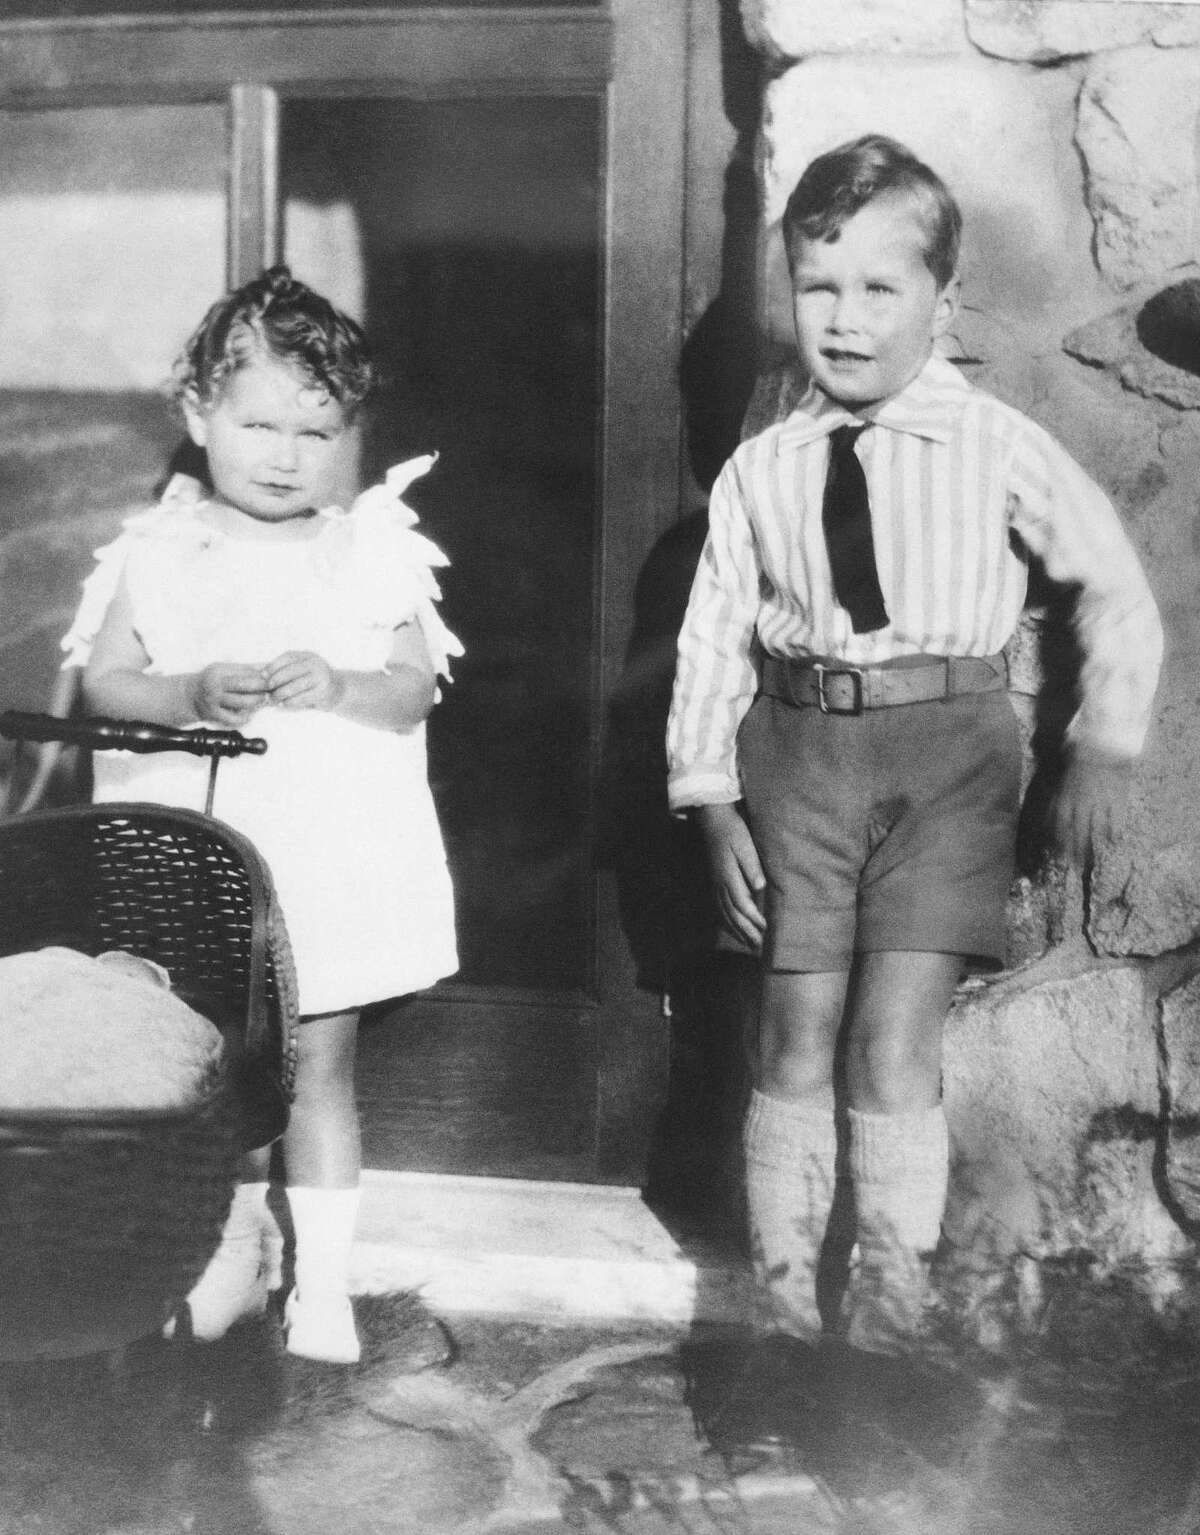 1930, George Bush with his sister in 1930.